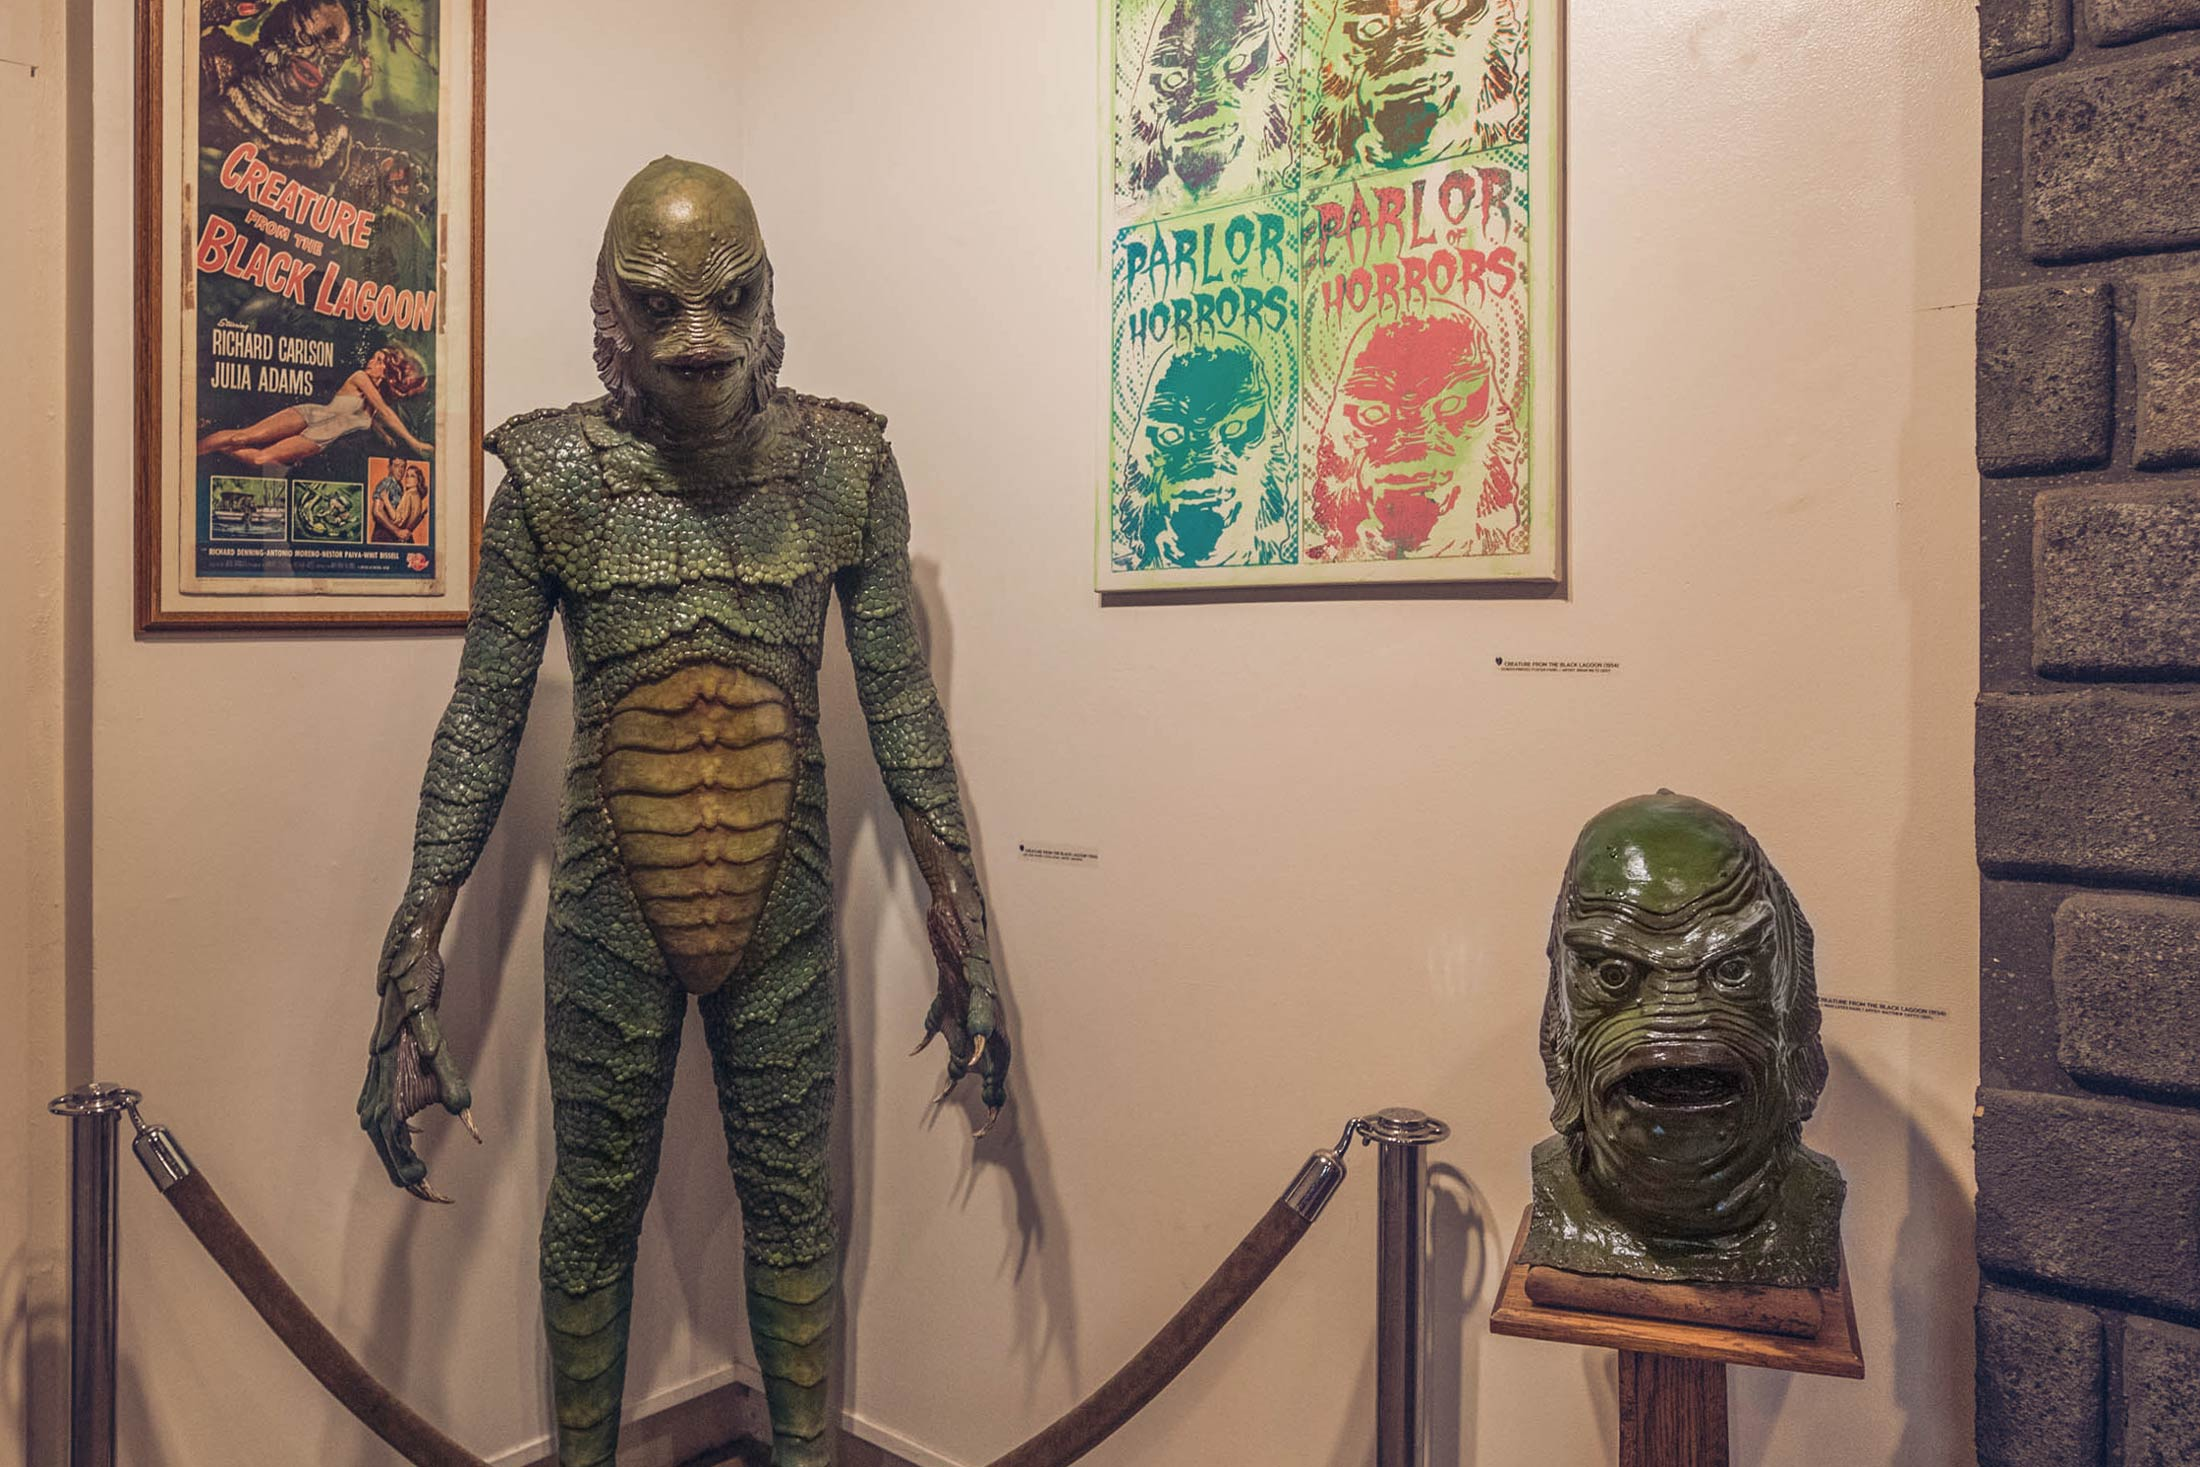 A life-sized gill-man model next to a gill-man mask on a pedestal